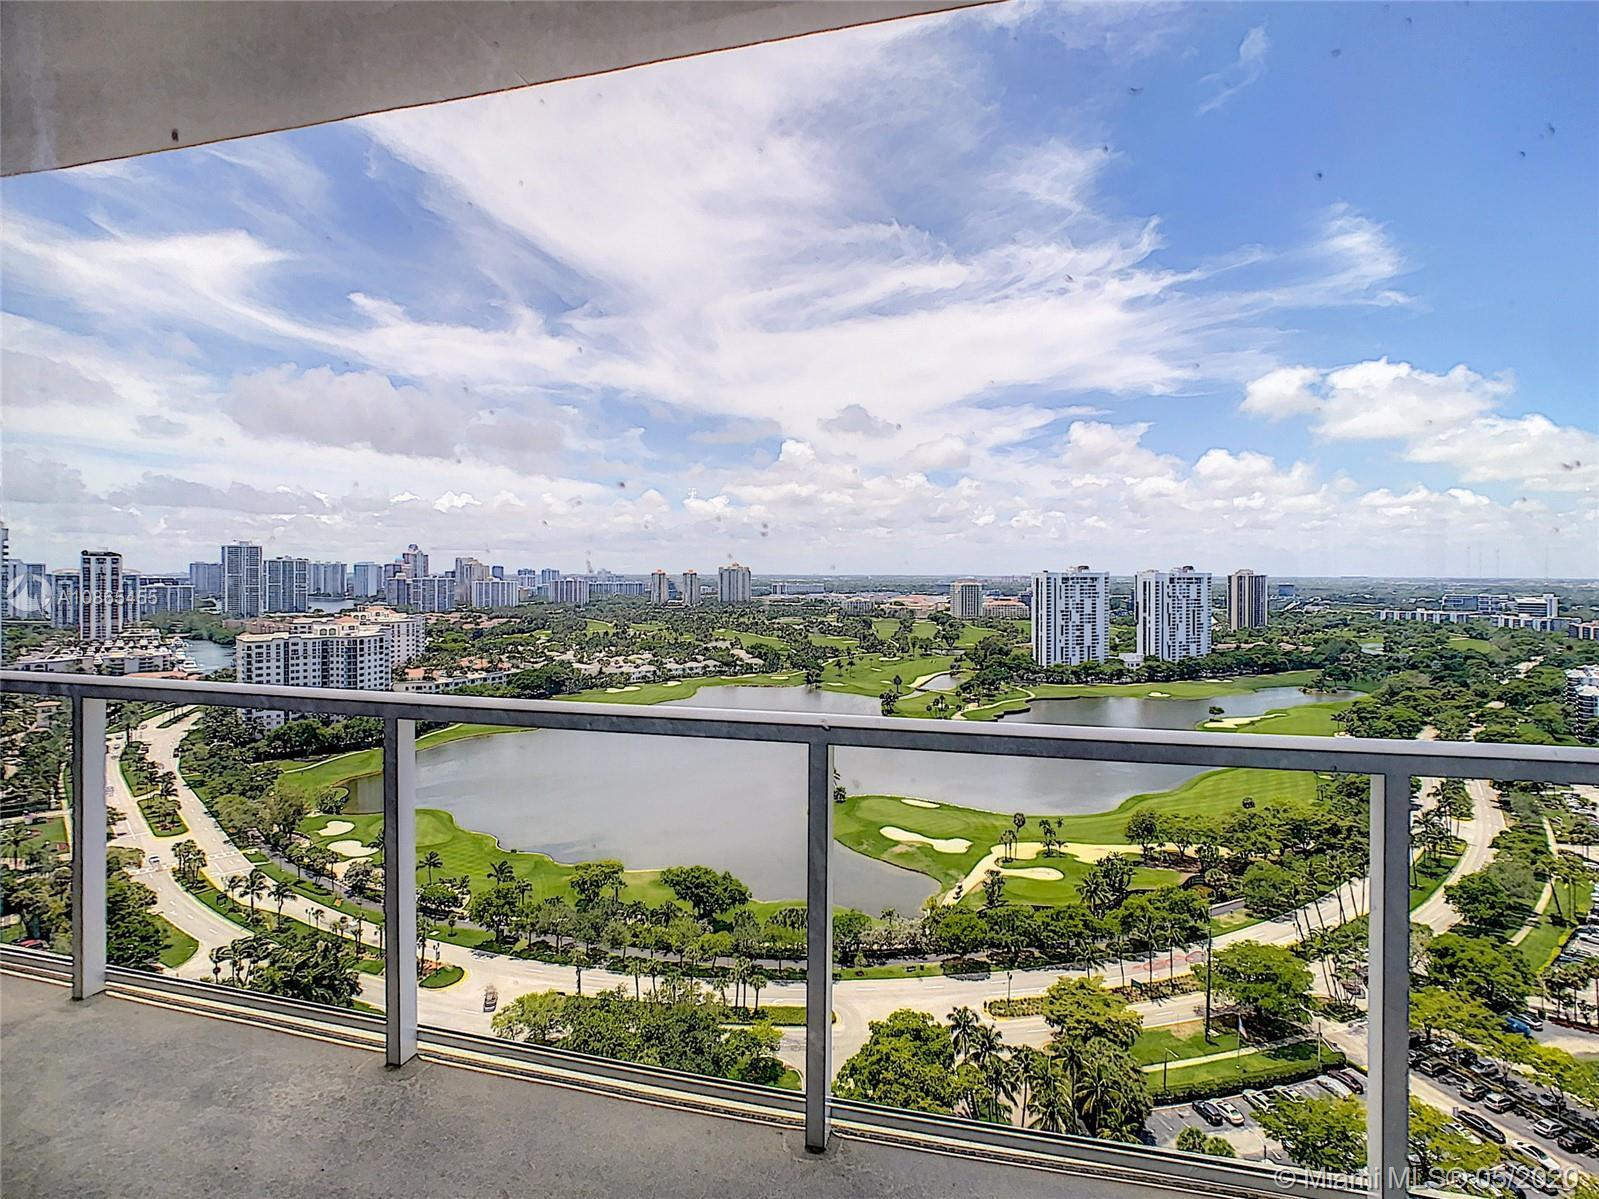 SPECTACULAR GOLF COURSE,LAKE,AVENTURA SKYLINE & OCEAN VIEW FROM REMODELED CORNER TOWER SUITE. FEATUR